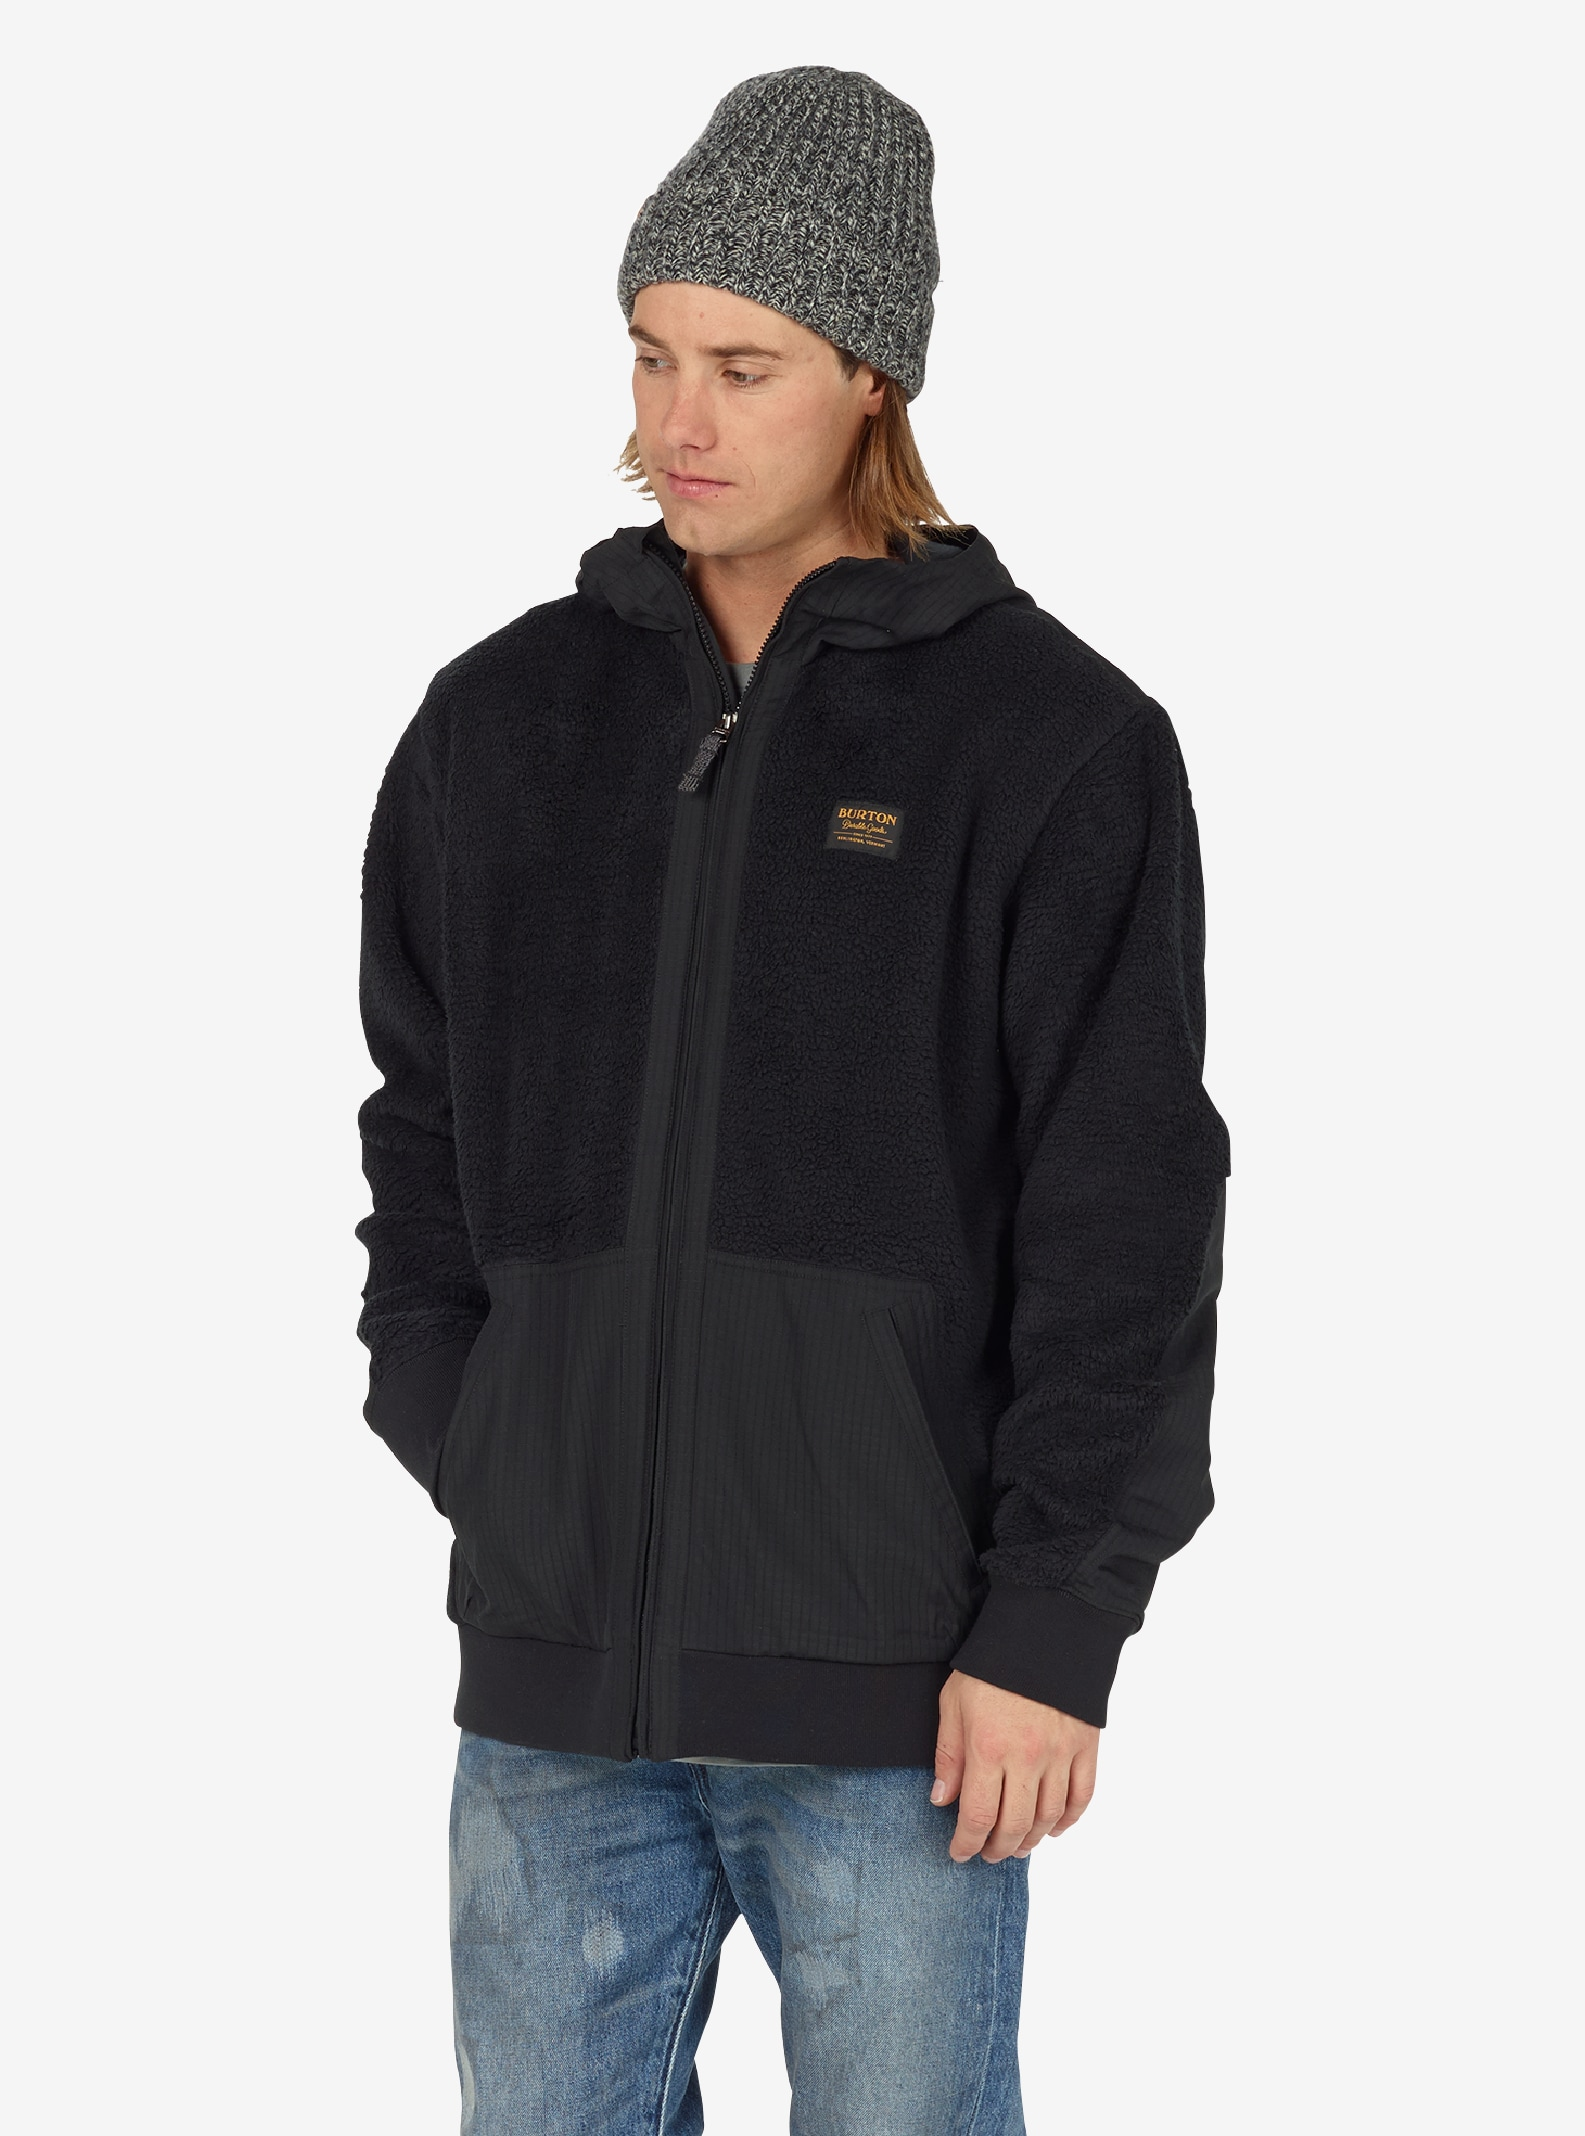 Men's Burton Tribute Full-Zip Fleece shown in True Black